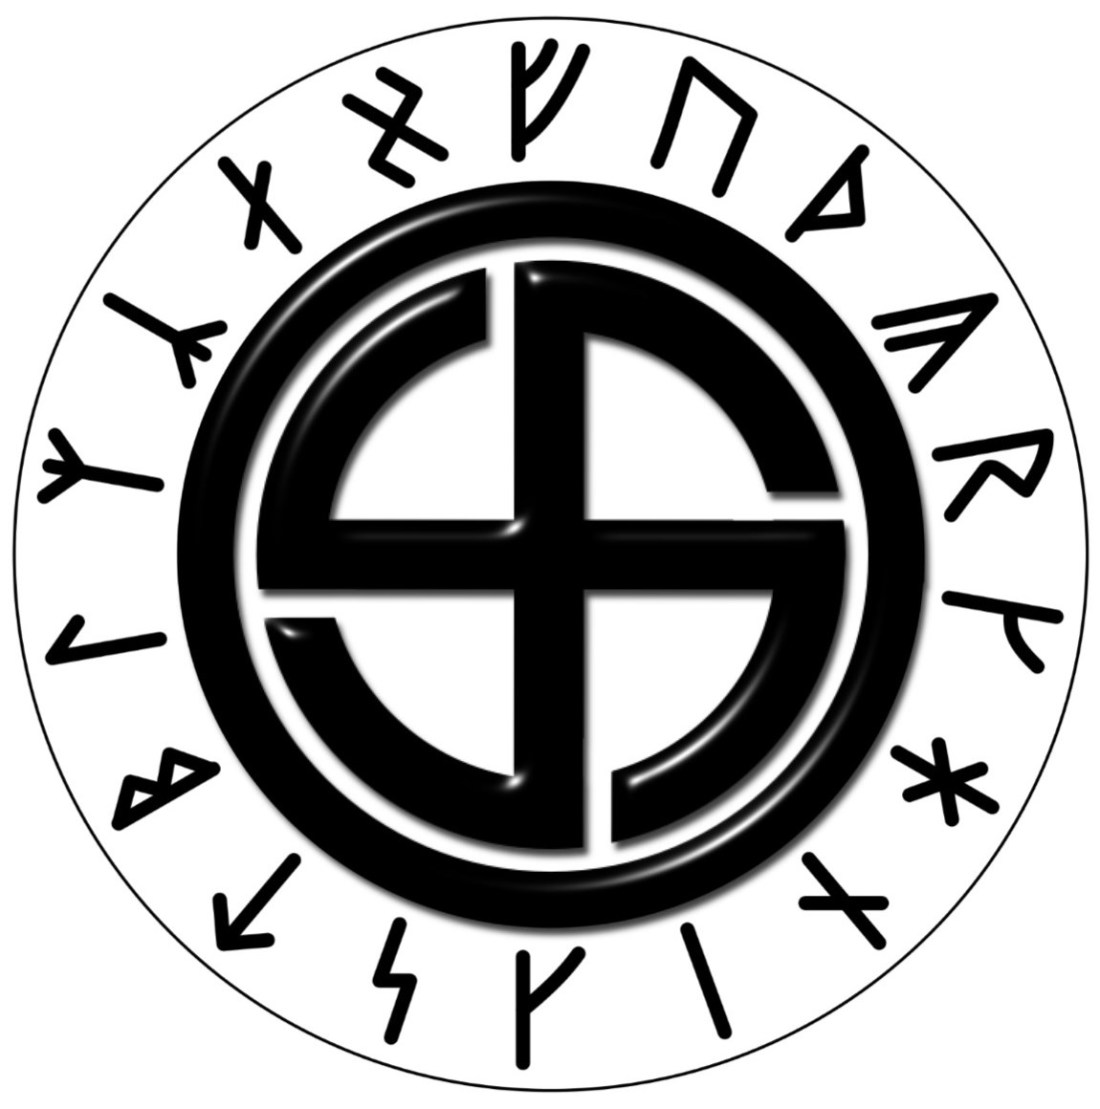 Swastika and Armanen Runes